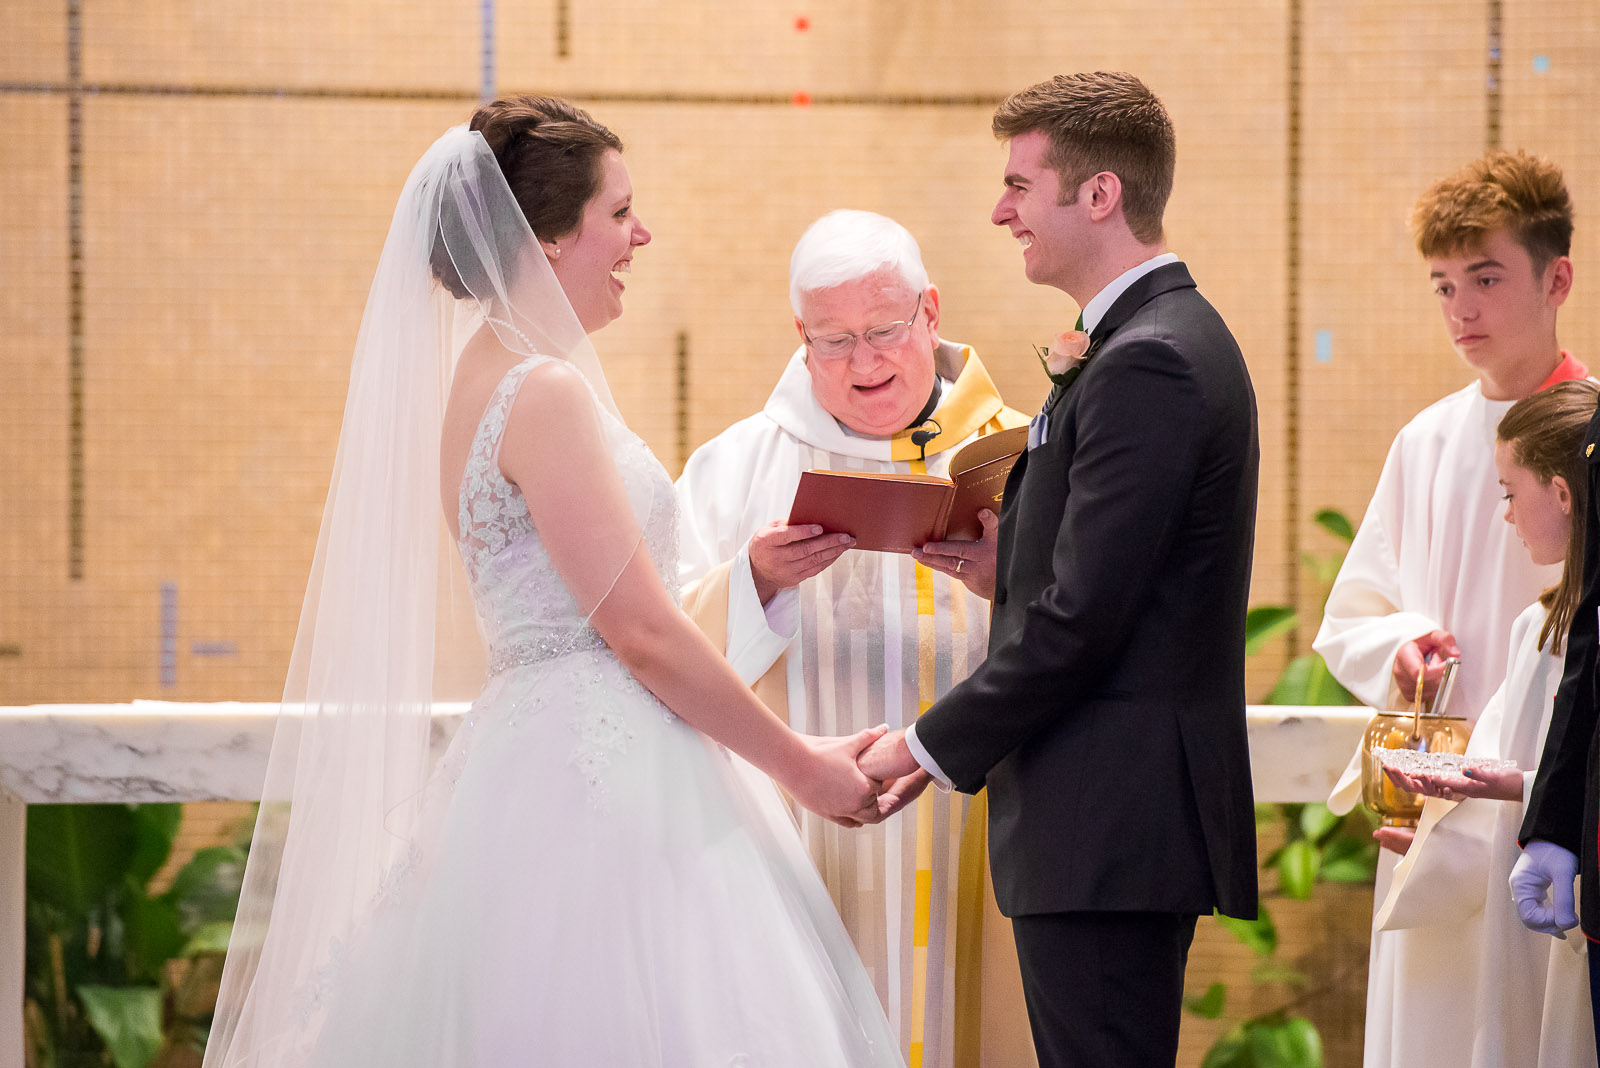 Eric_and_Christy_Photography_Blog_Wedding_Kelly_Michael-12